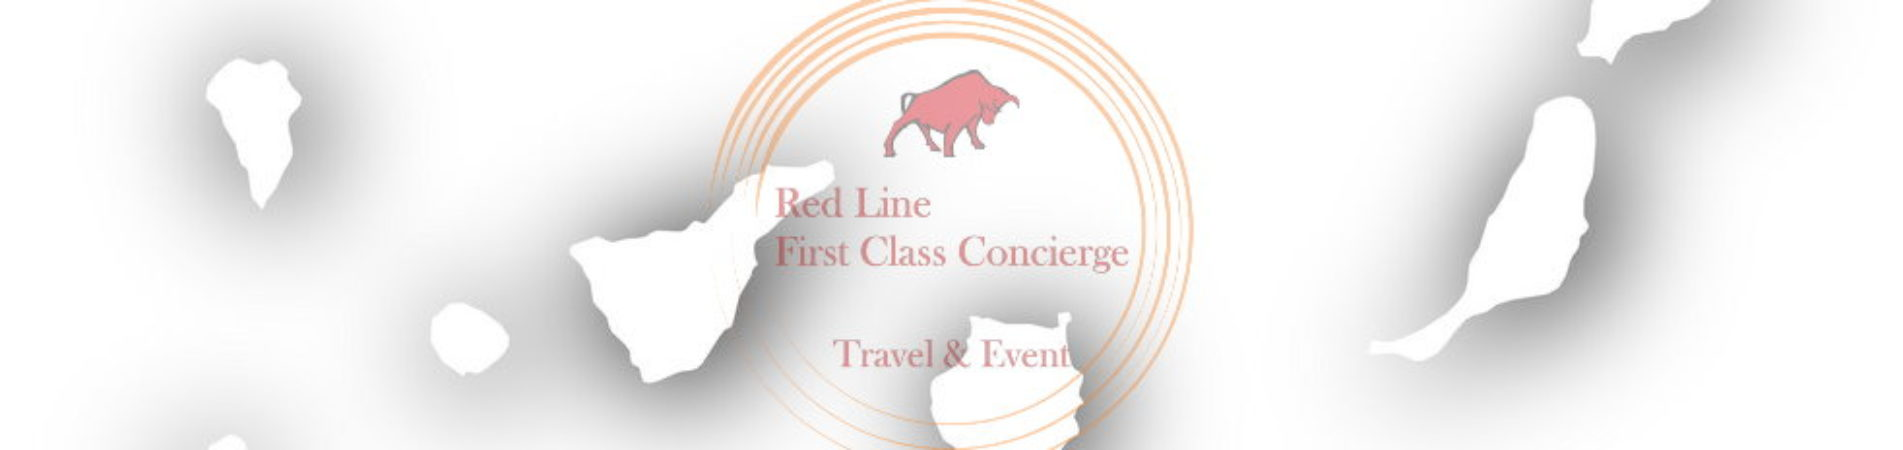 RED LINE | Event-Incentive-Congress-Agency Canary Islands